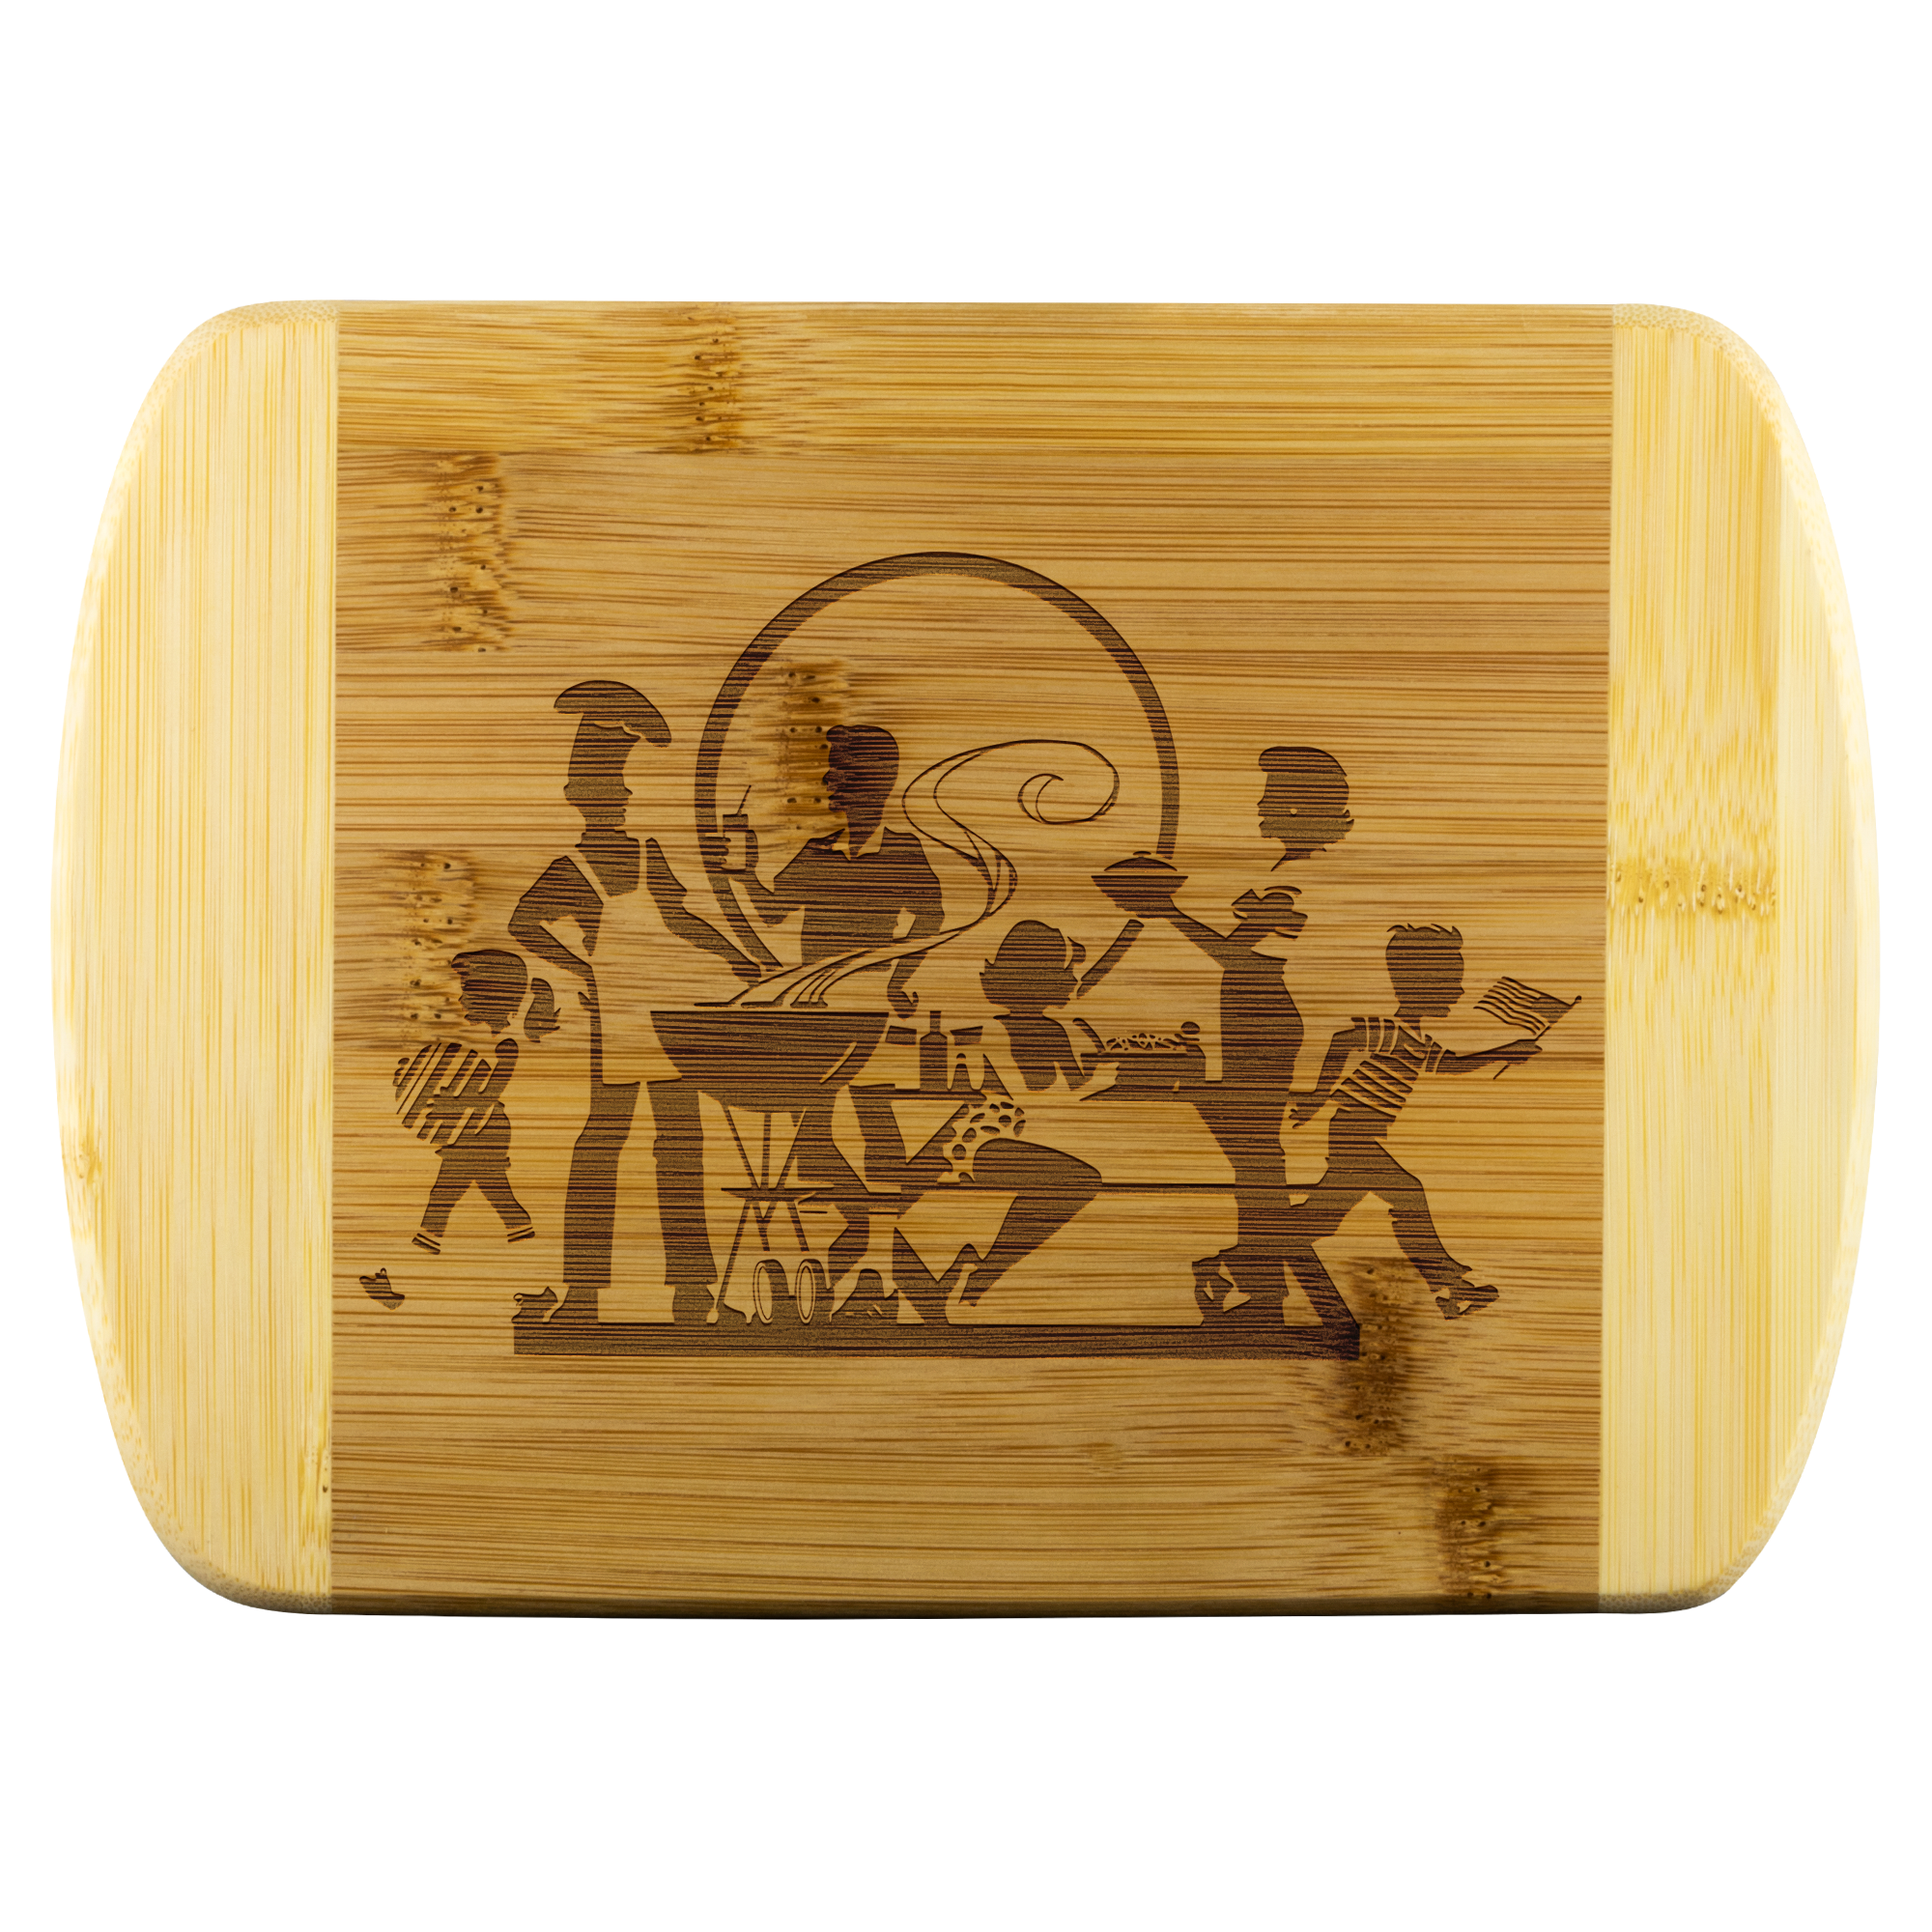 BBQ Family Party - Round Edge Wood Cutting Board